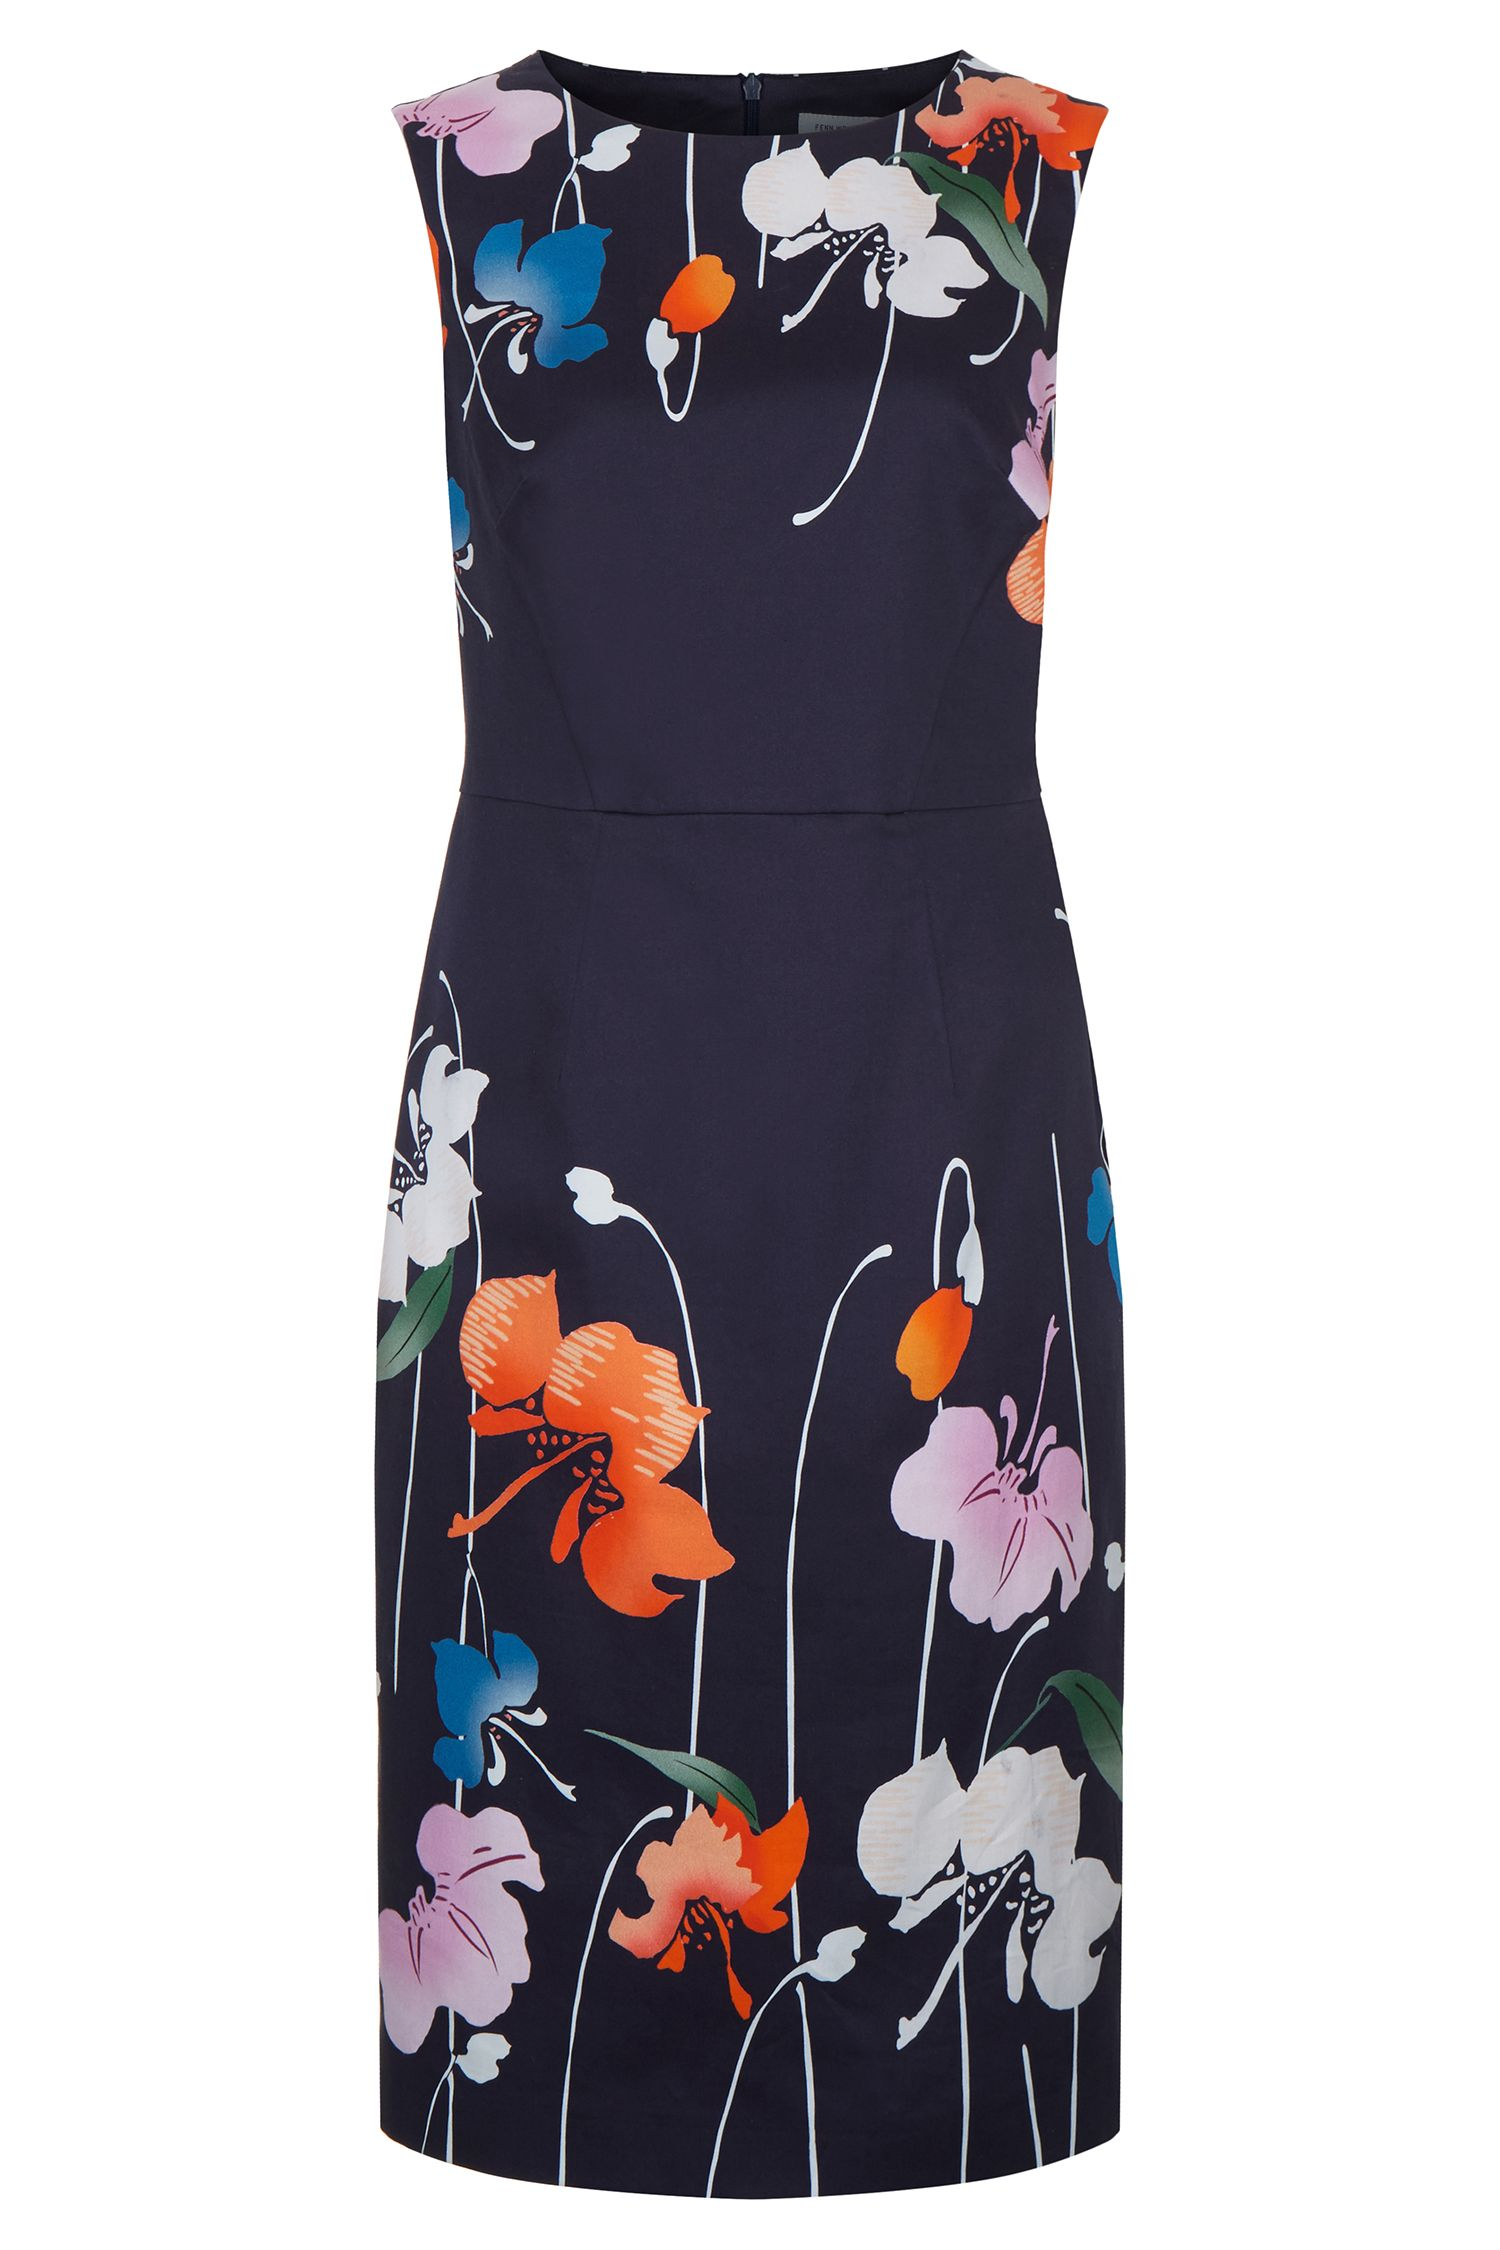 Fenn Wright Manson Sicily Dress, Multi-Coloured